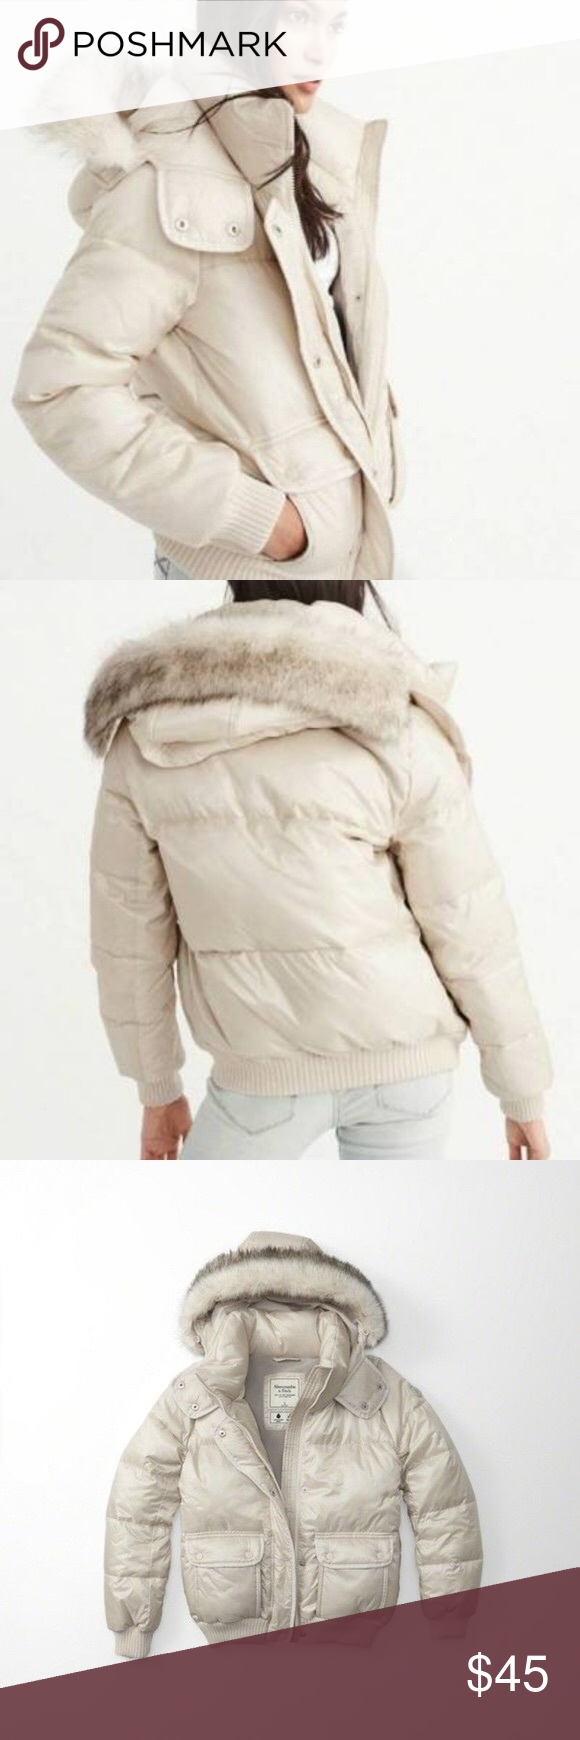 Abercrombie Fitch Puffer Jacket Abercrombie And Fitch Jackets Puffer Jackets Jackets [ 1740 x 580 Pixel ]